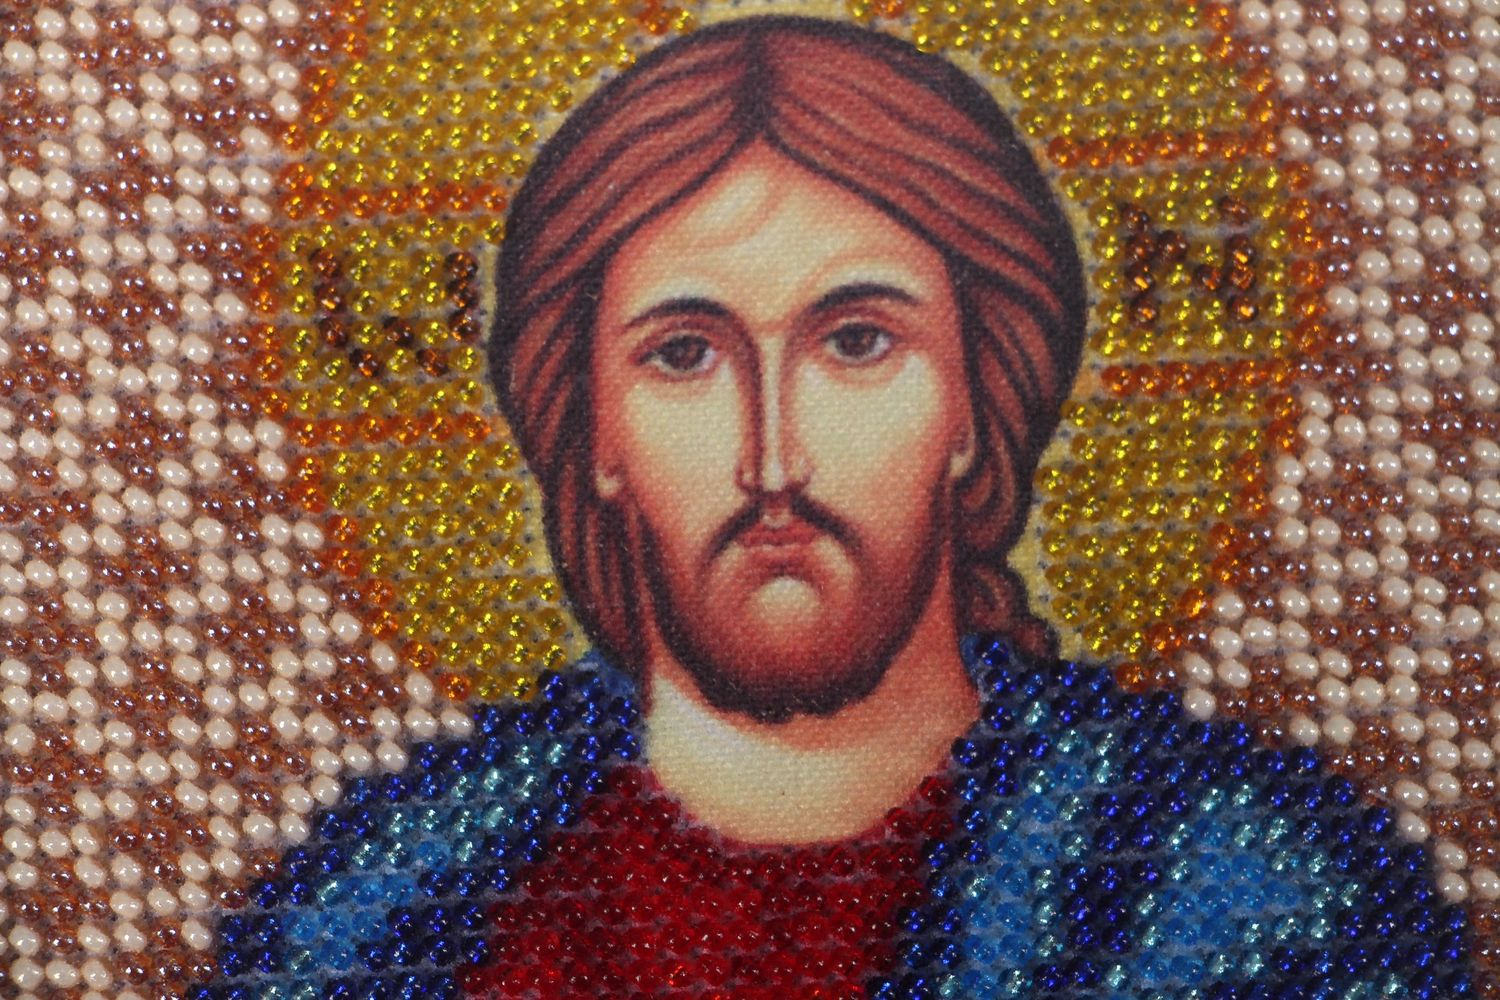 Jesus Christ icon embroidered with beads photo 3